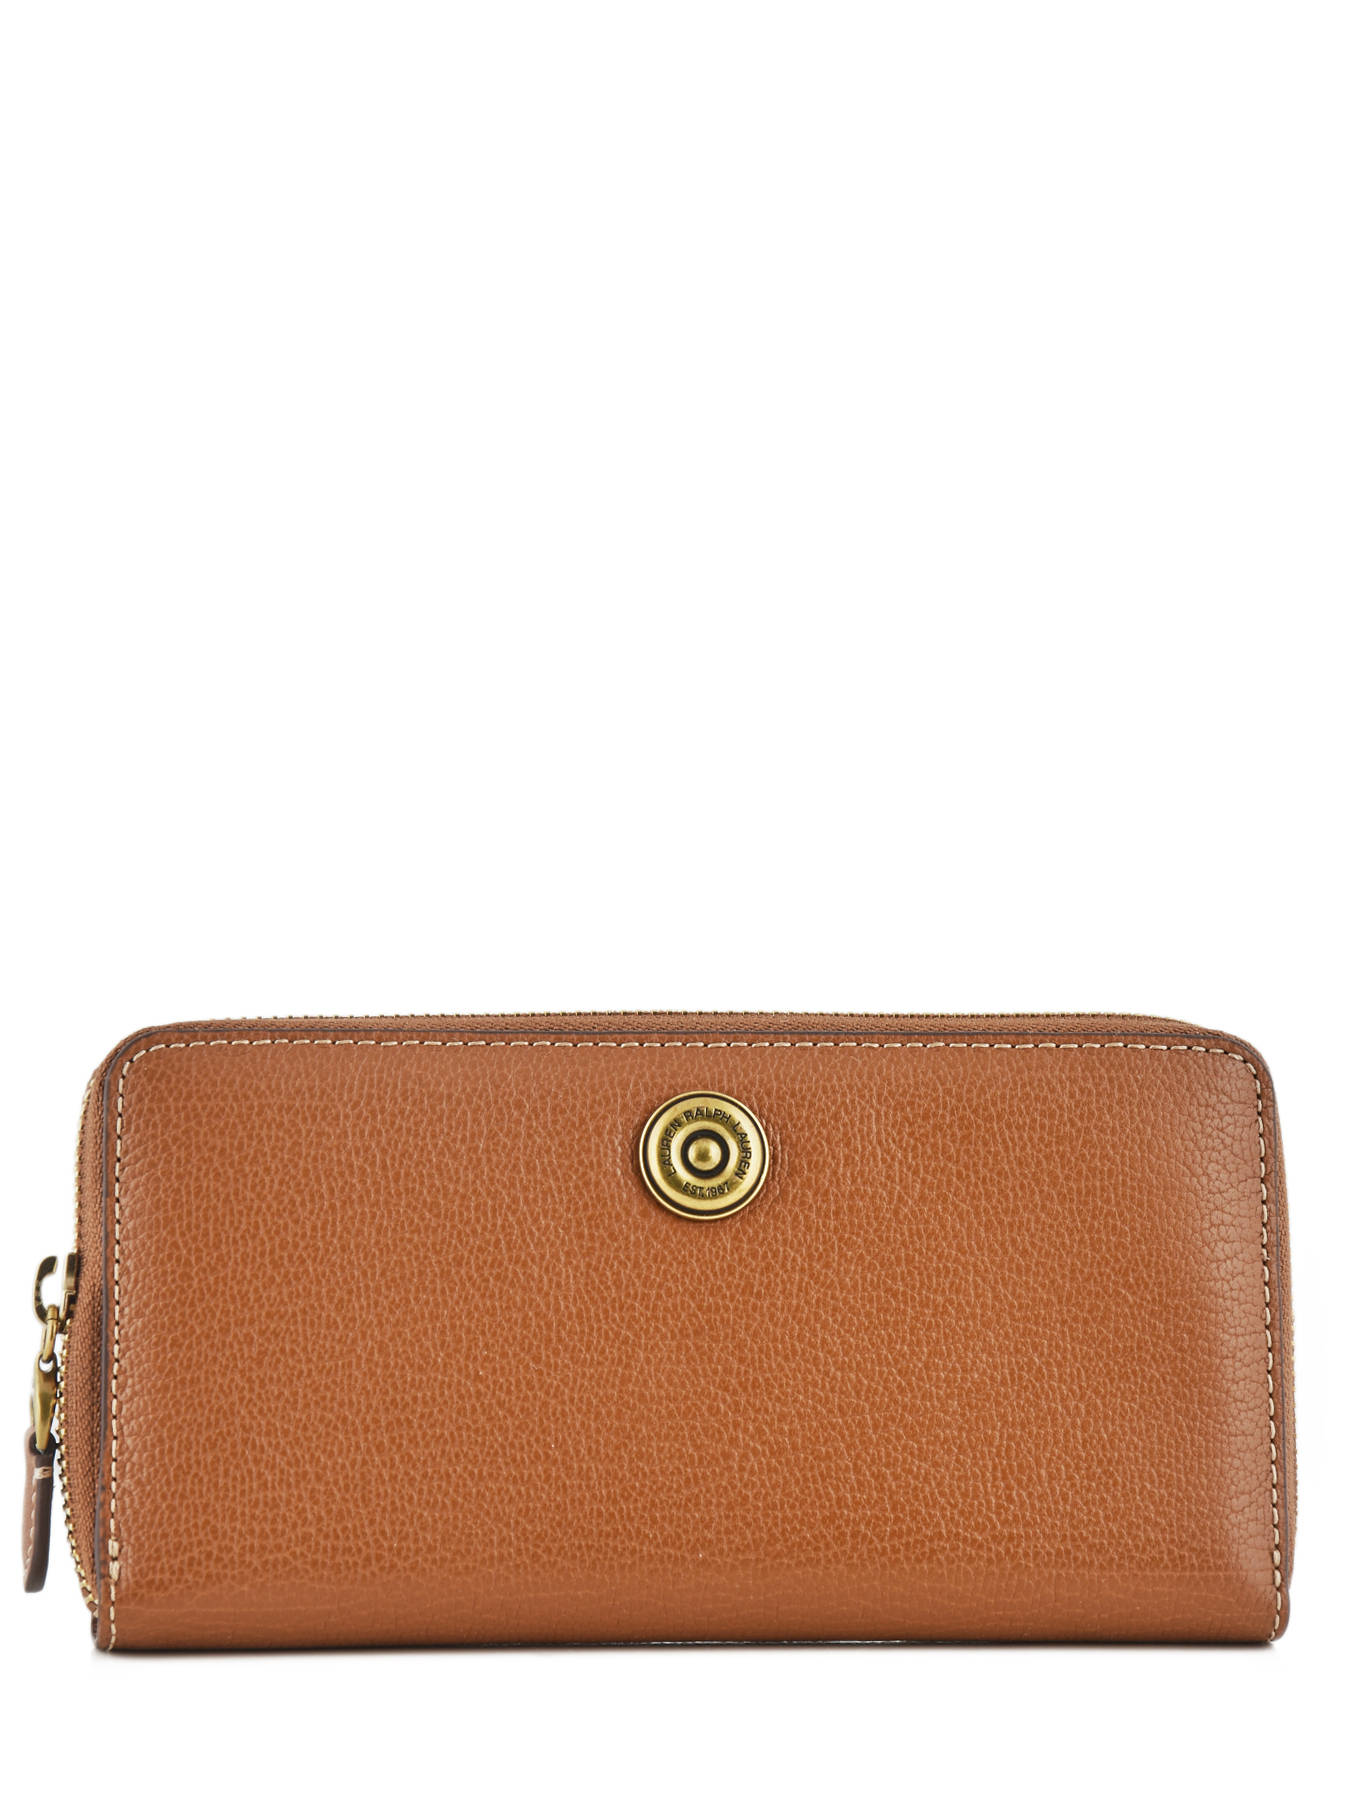 ... Wallet Leather Lauren ralph lauren Brown millbrook 32688506 ... 895862b1dec